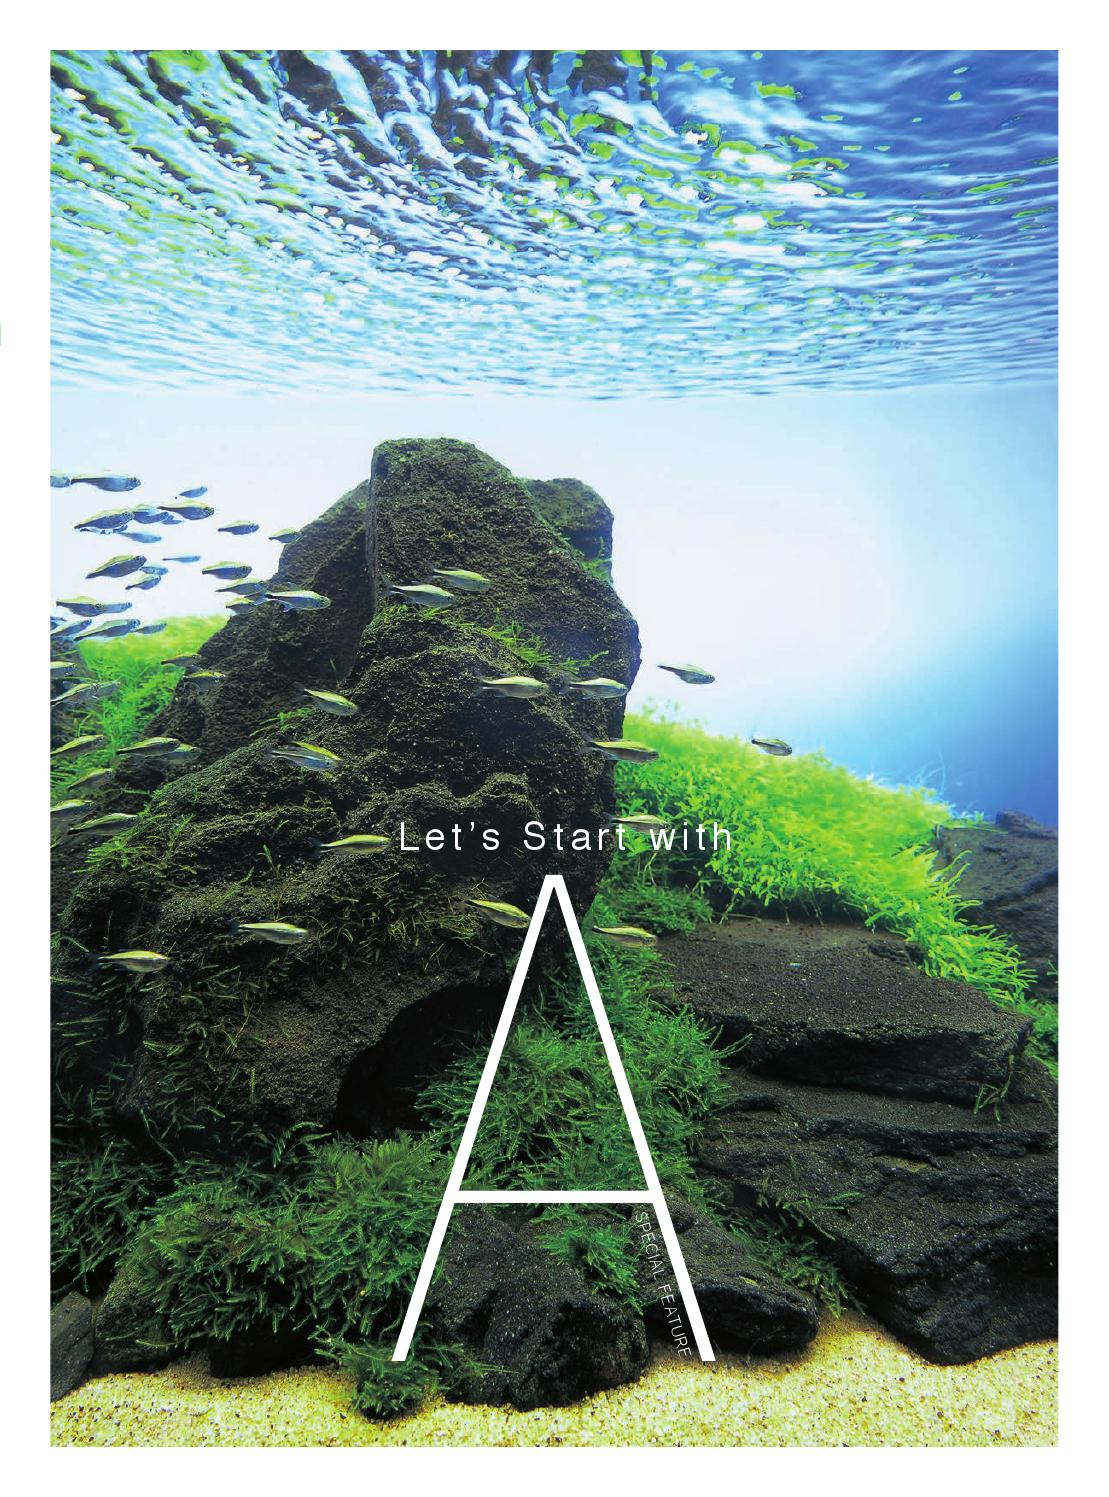 Ada Lets Start With A By Peha68 Issuu Thermometer Original For Aquascape Aquarium